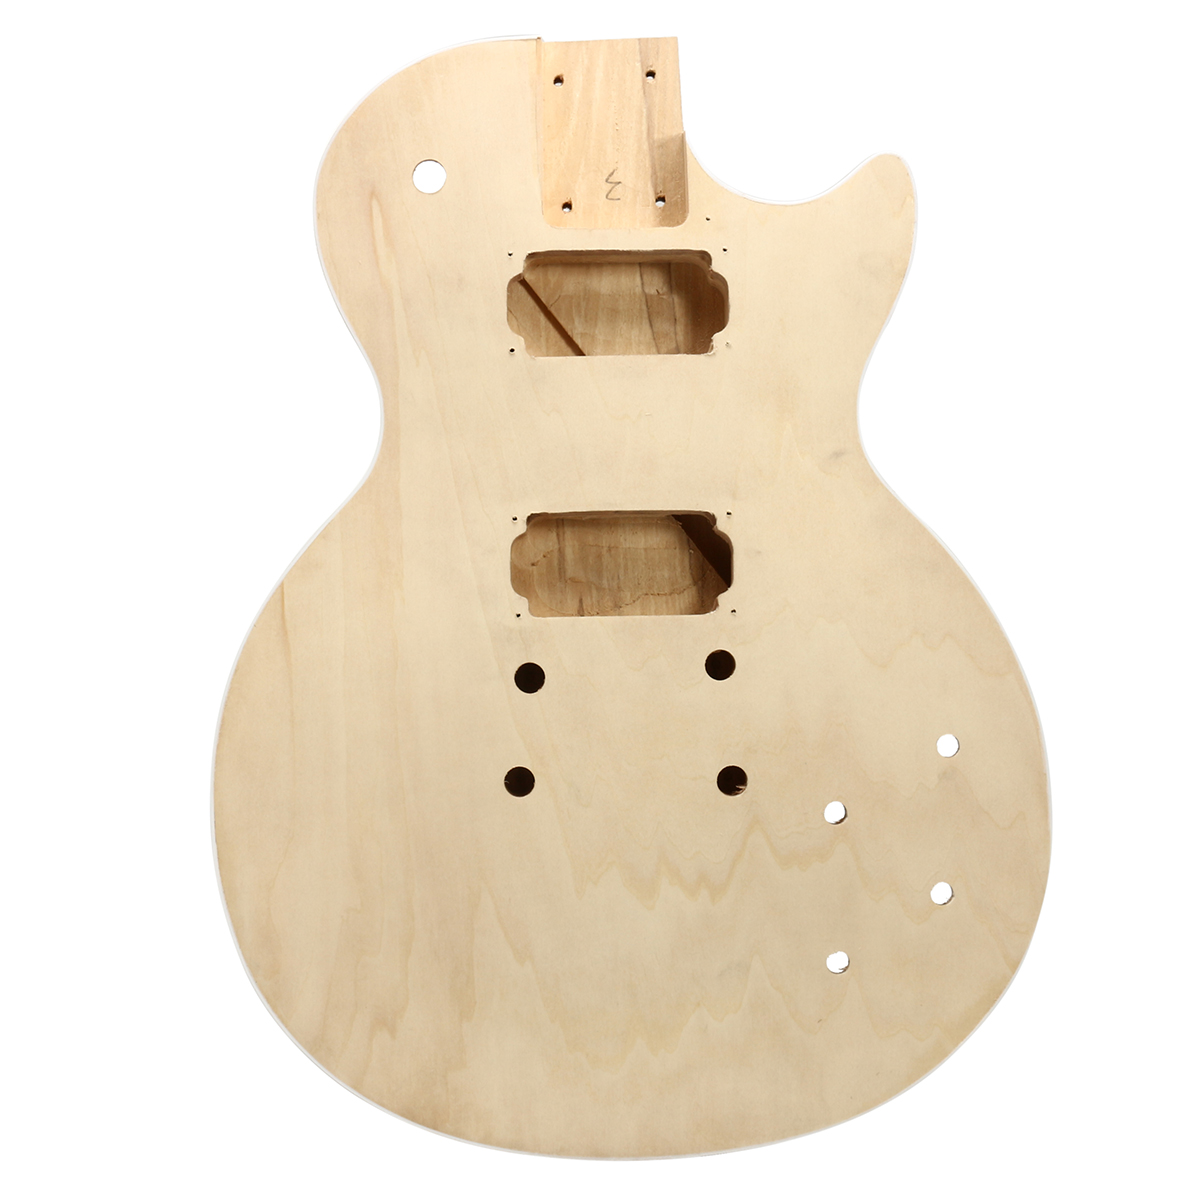 Electric Guitar Diy Mahogany Body Rosewood Fingerboard Kit Build Doityourself How To Make A Circuit Board Pick Do It Detail Image